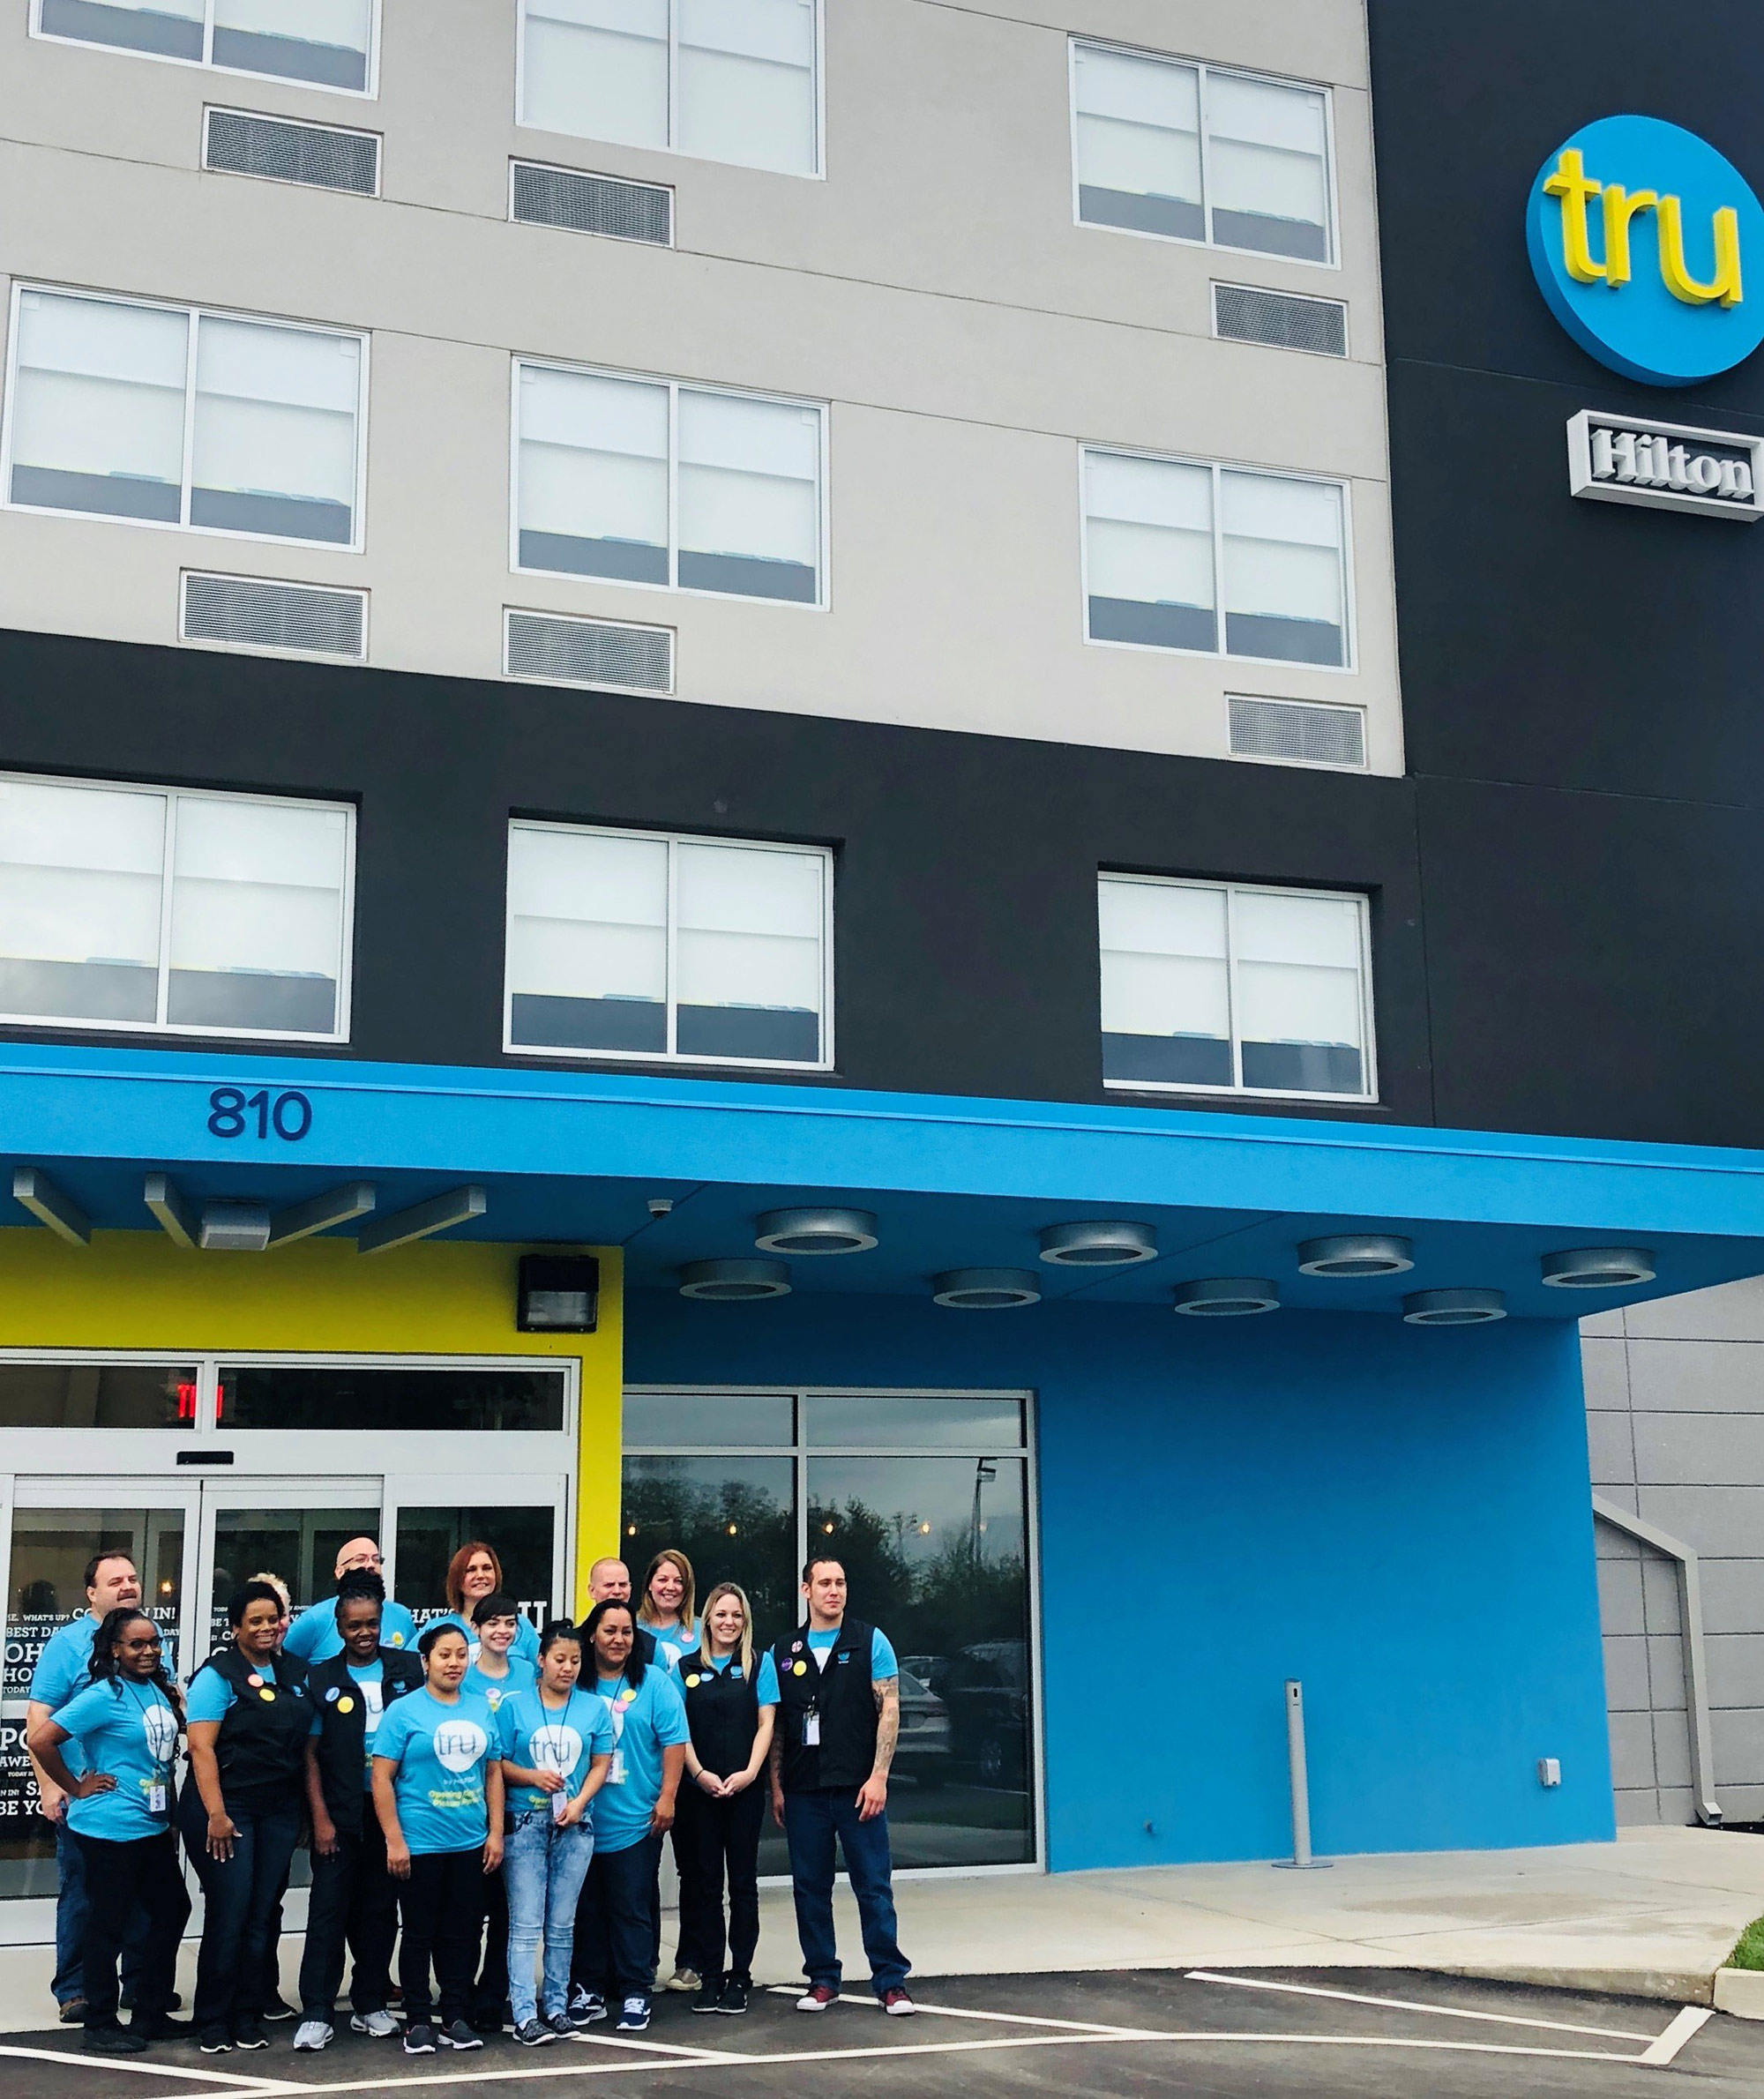 Αποτέλεσμα εικόνας για Louisville welcomes the new Tru by Hilton Louisville Airport